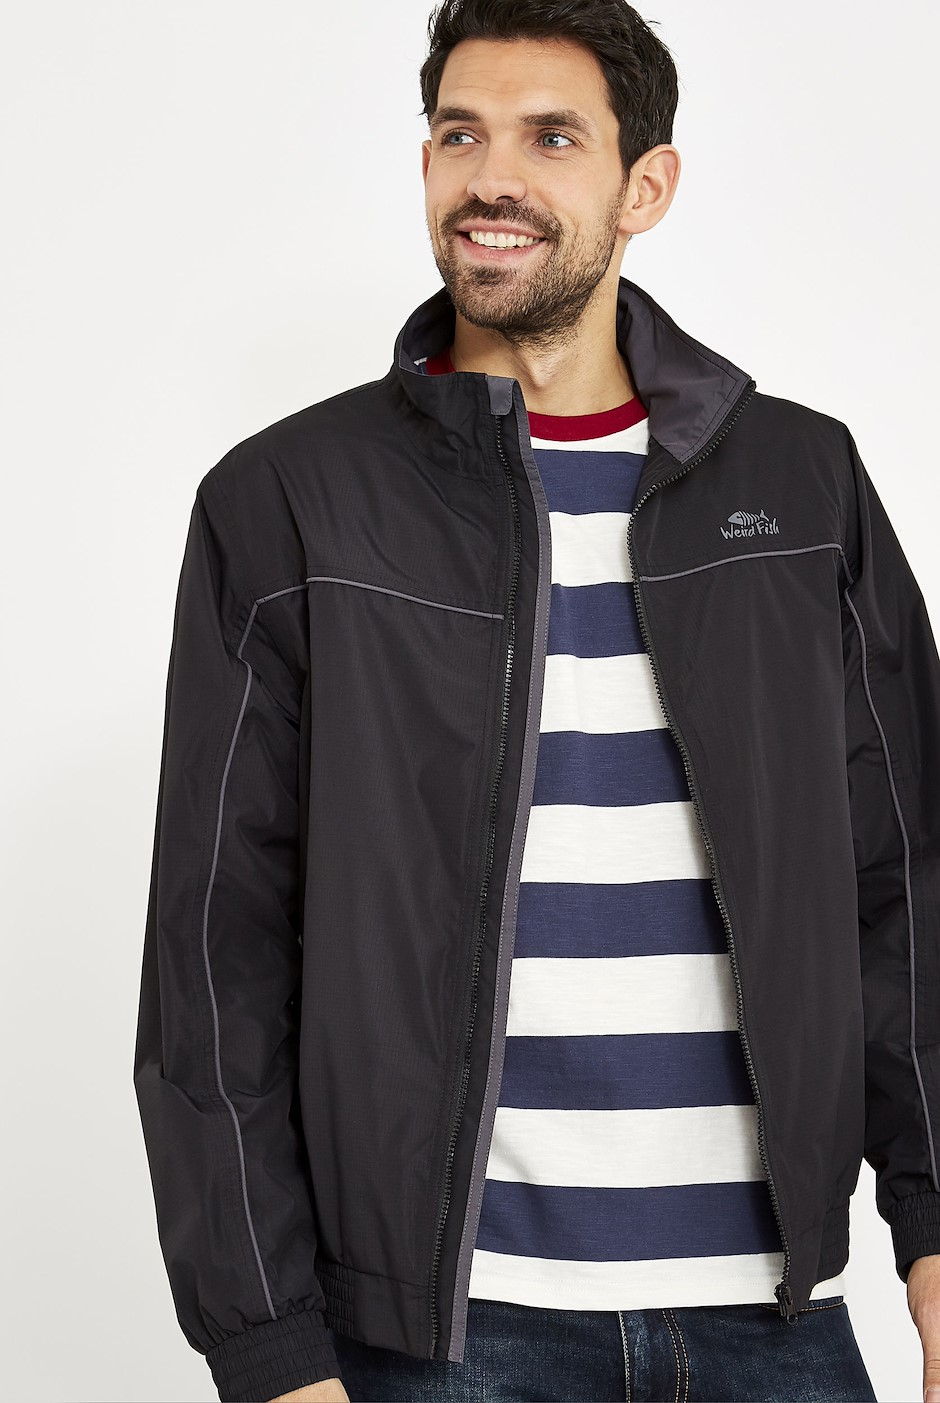 Dunnet Team Jacket Black